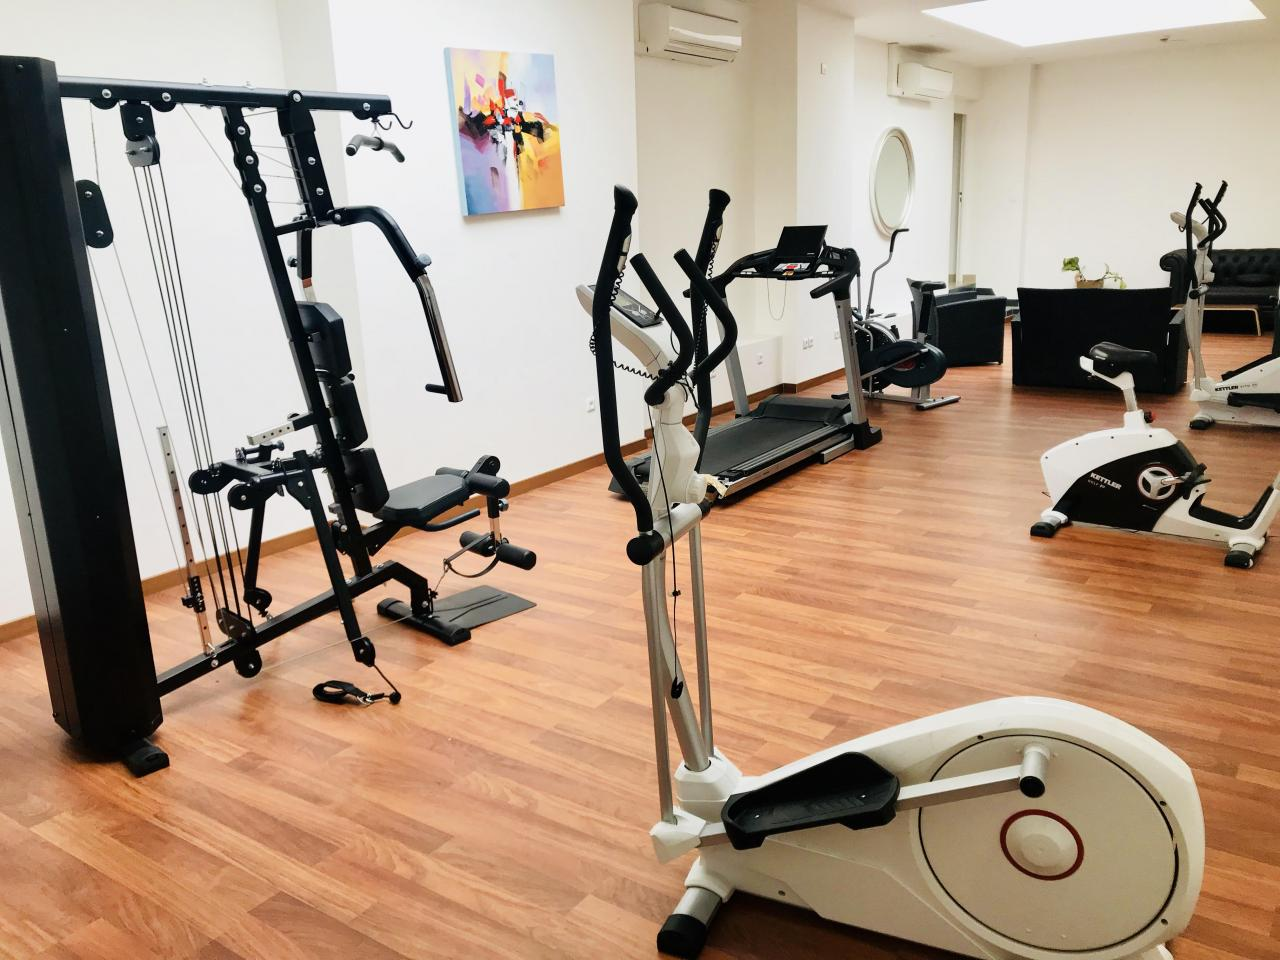 Executive Hotel - Salle de fitness